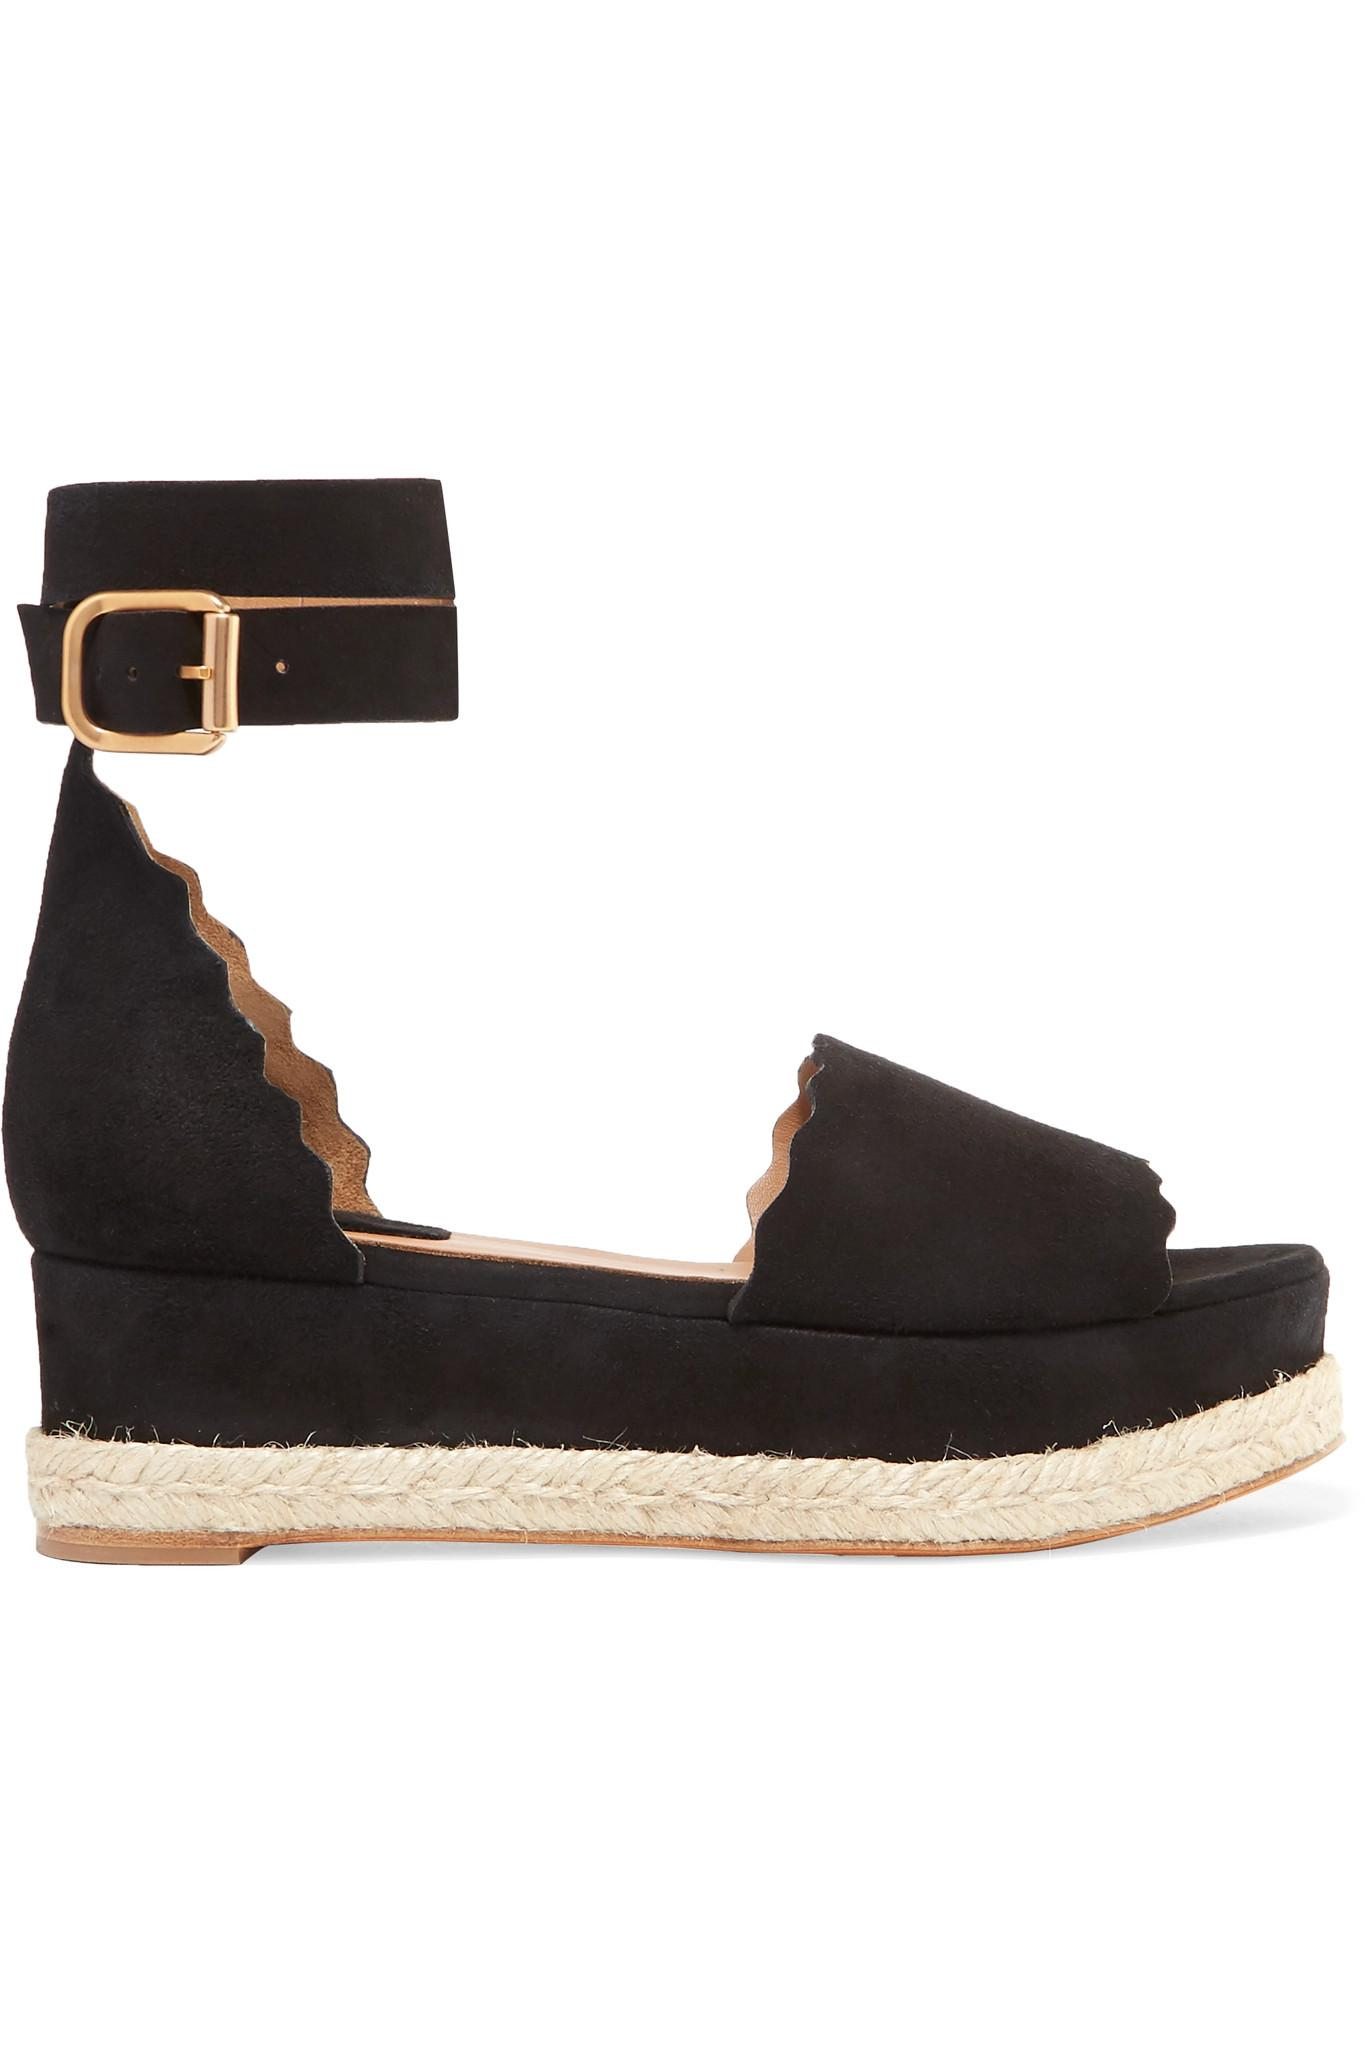 aeb5a582970f Lyst - Chloé Lauren Scalloped Suede Espadrille Platform Sandals in Black